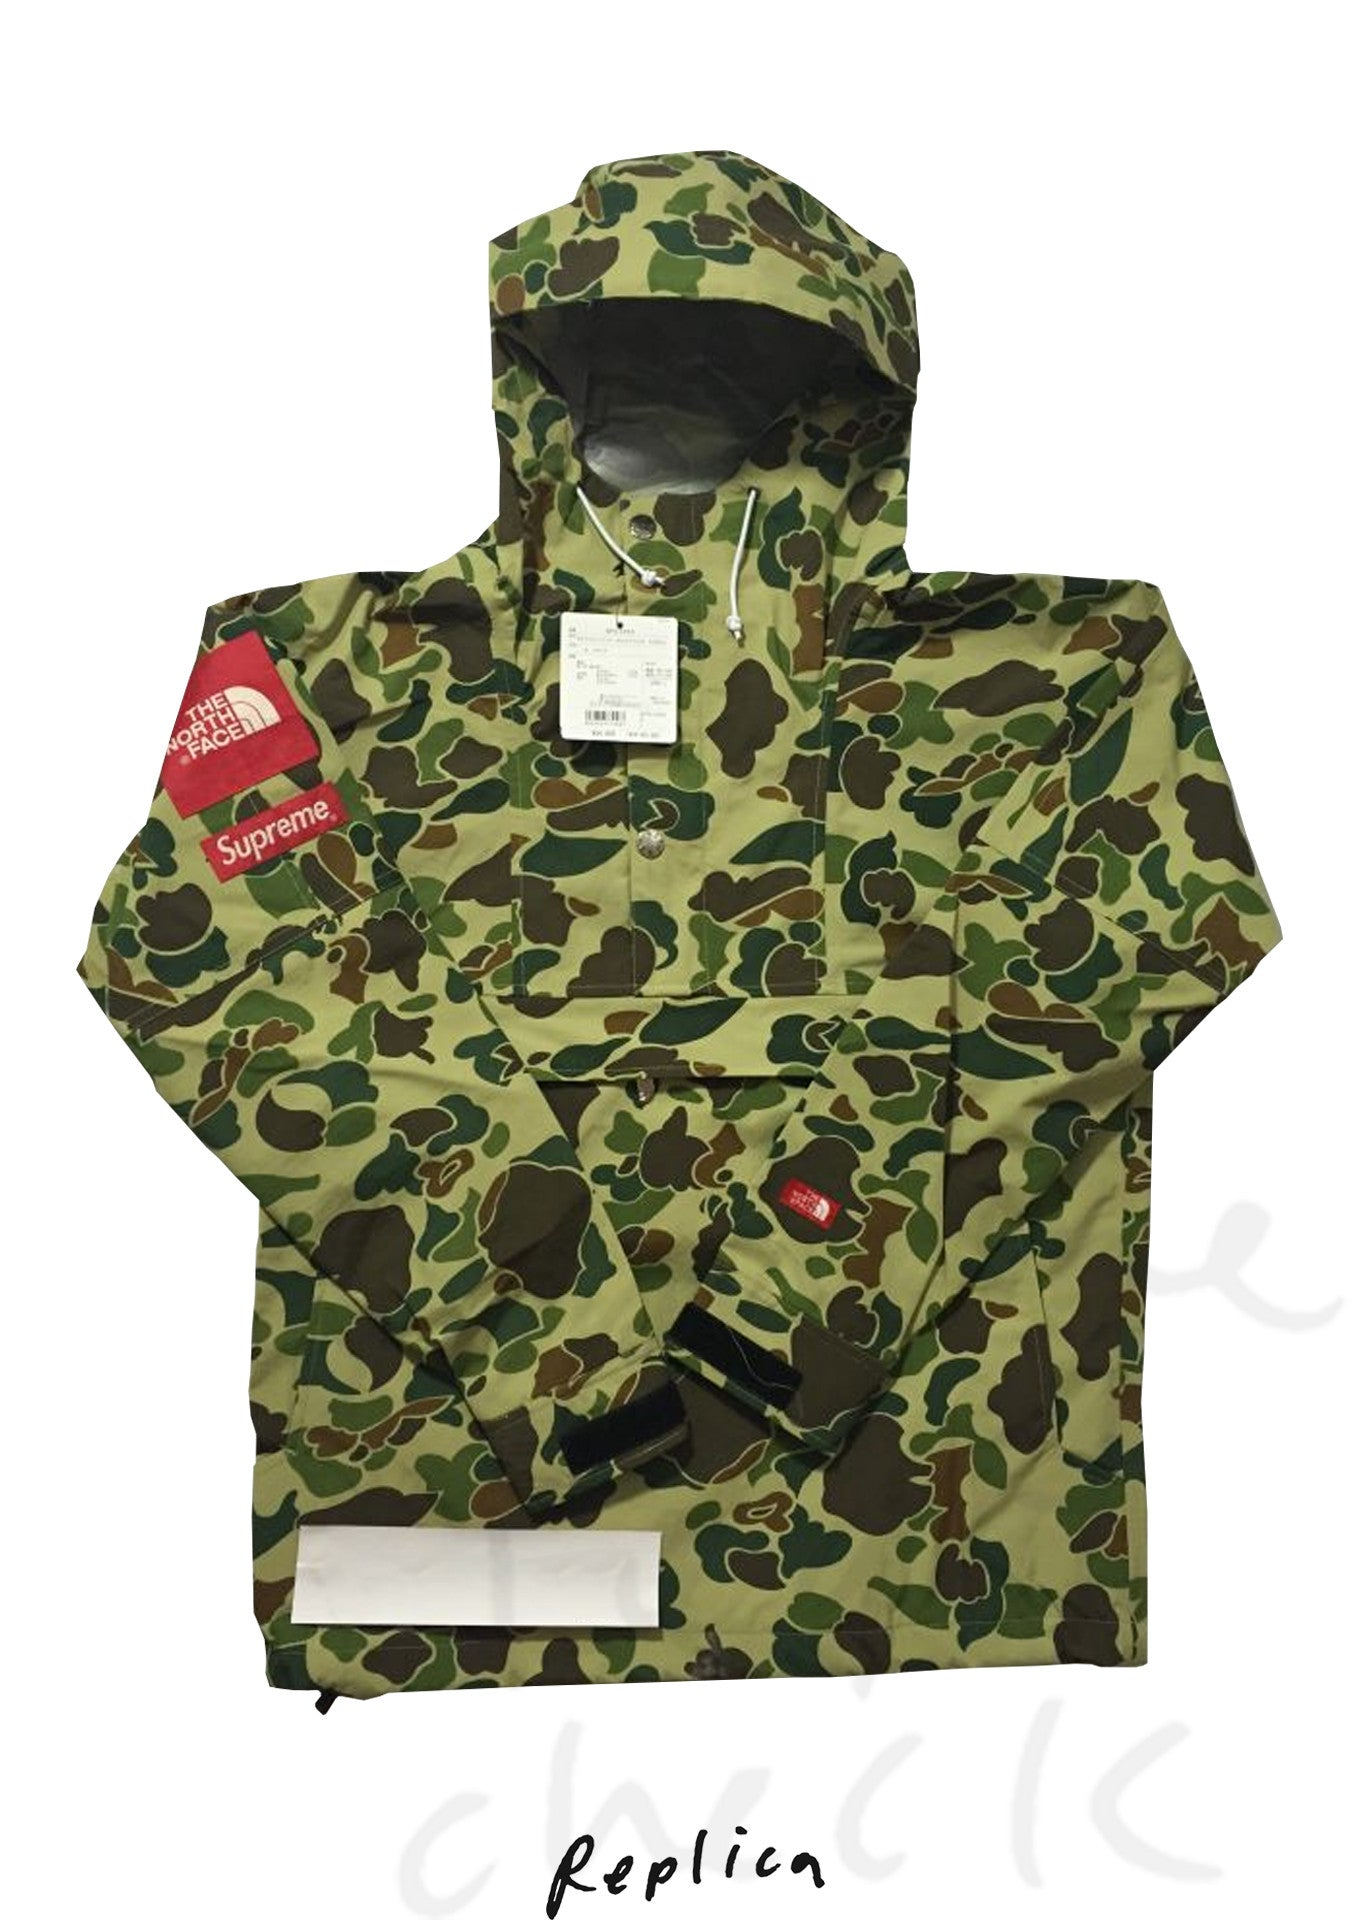 Supreme x The North Face Expedition Pullover Camo (S/S 2010)